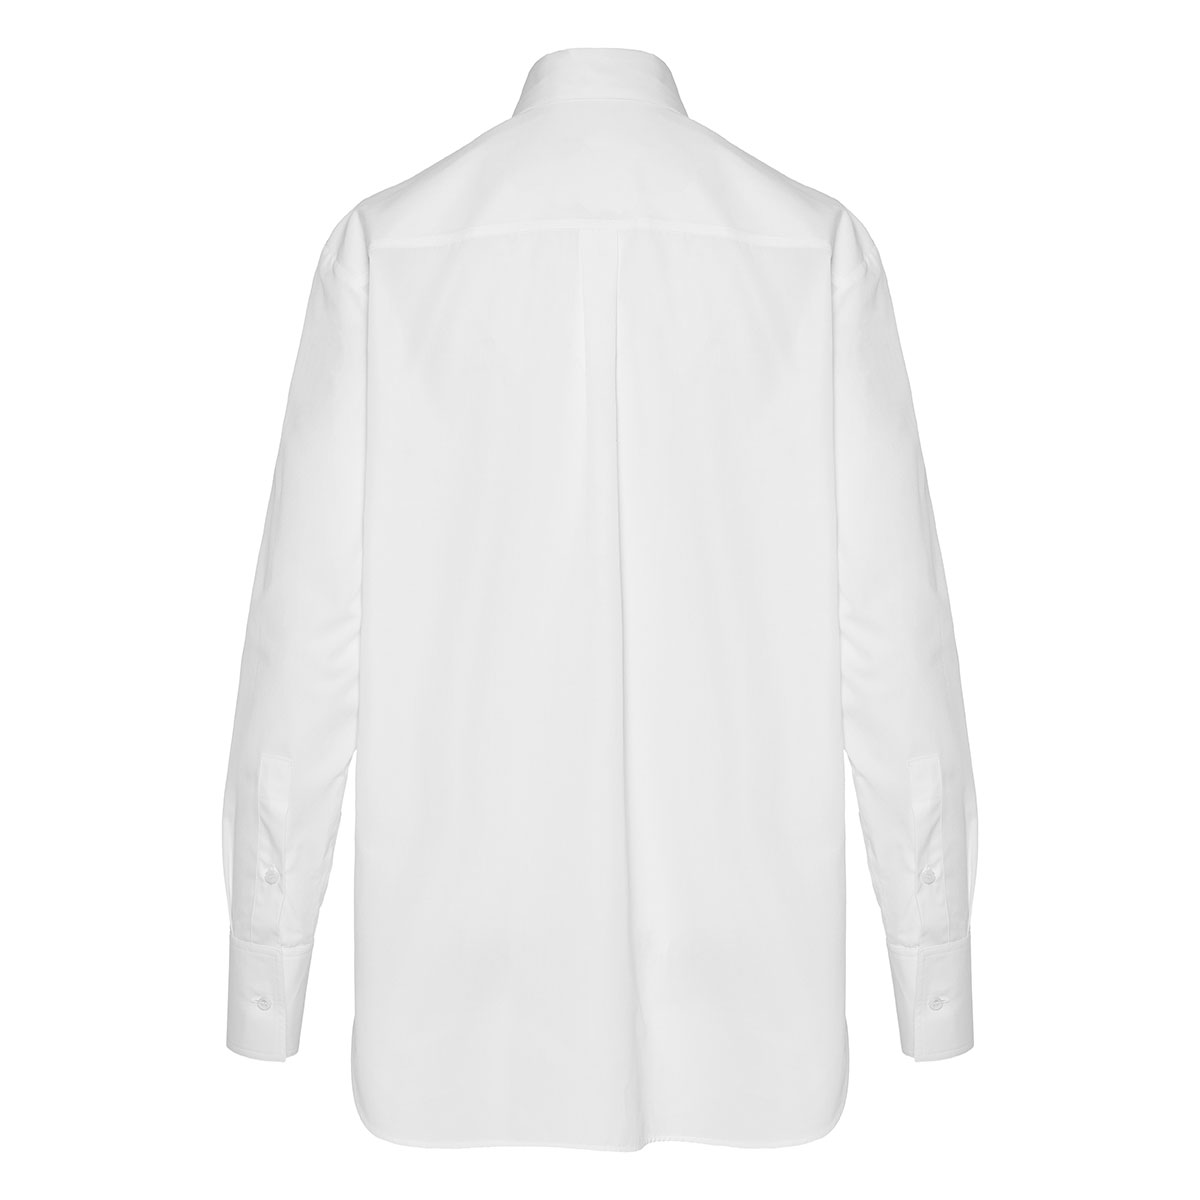 V-logo oversized shirt